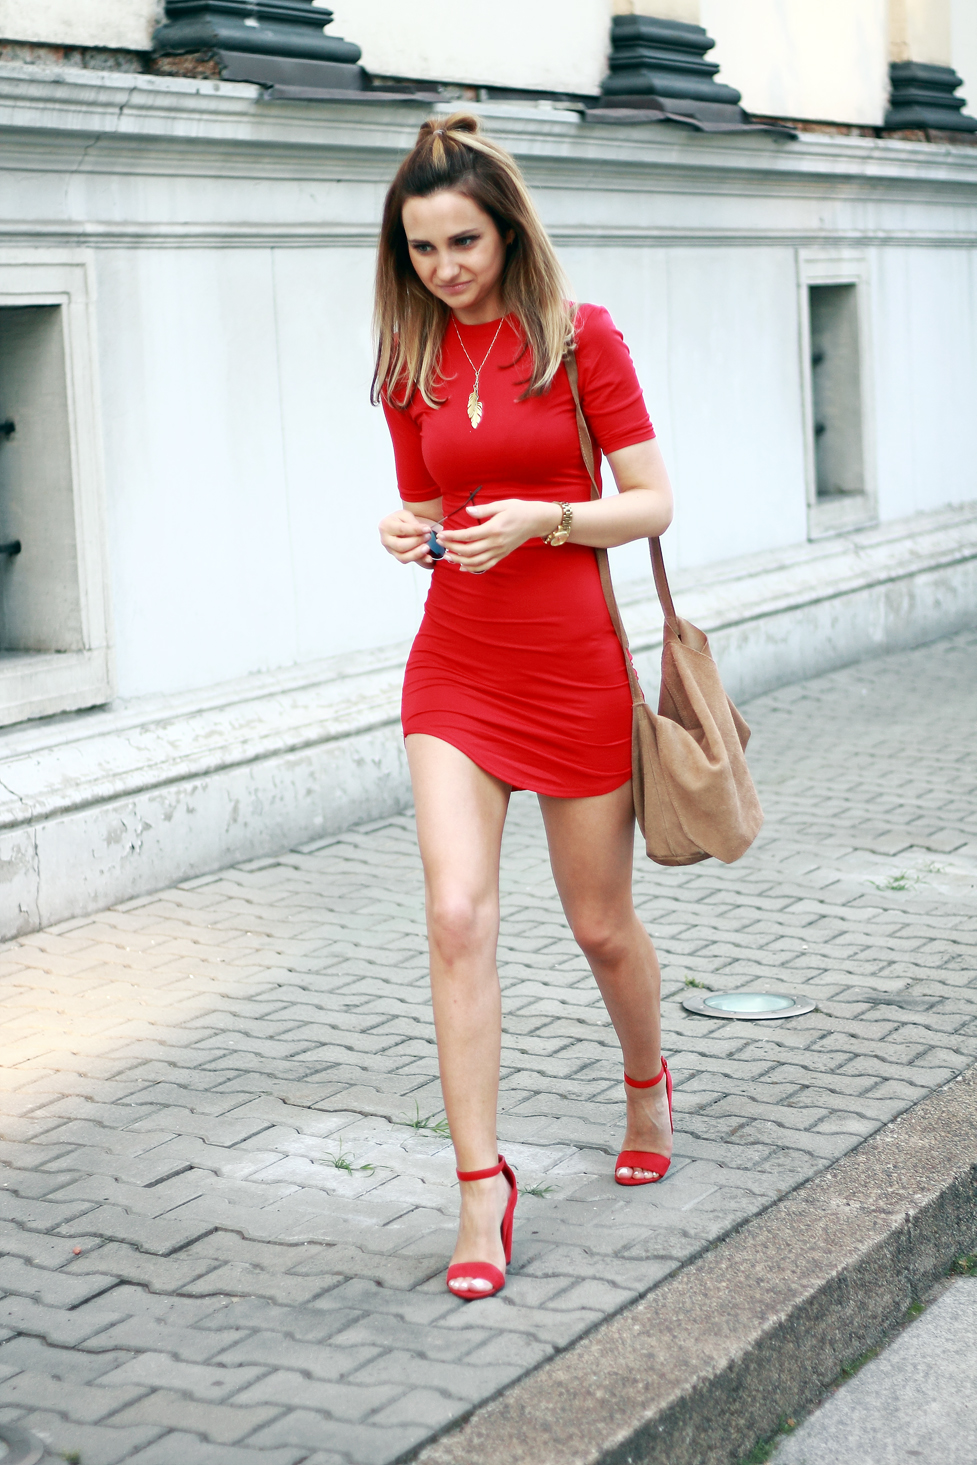 street style fashion red dress heels blonde girl tumblr ootd outfit lookbook look what to wear